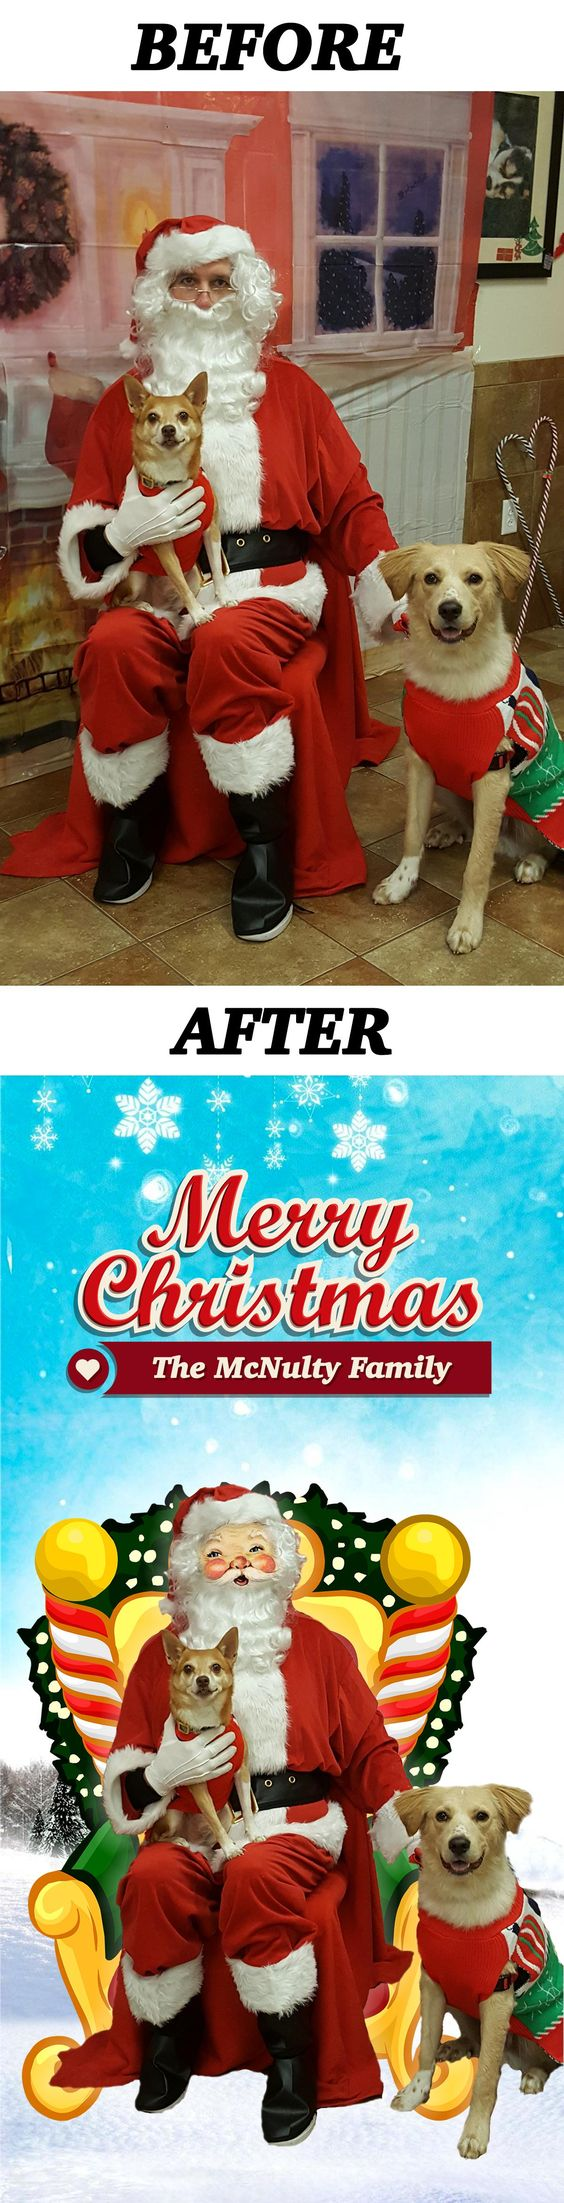 Took our dogs to have their photo taken with Santa. But the guy dressed as Santa and the background looked lifeless. So I took to Photoshop. http://ift.tt/2gDG3jz